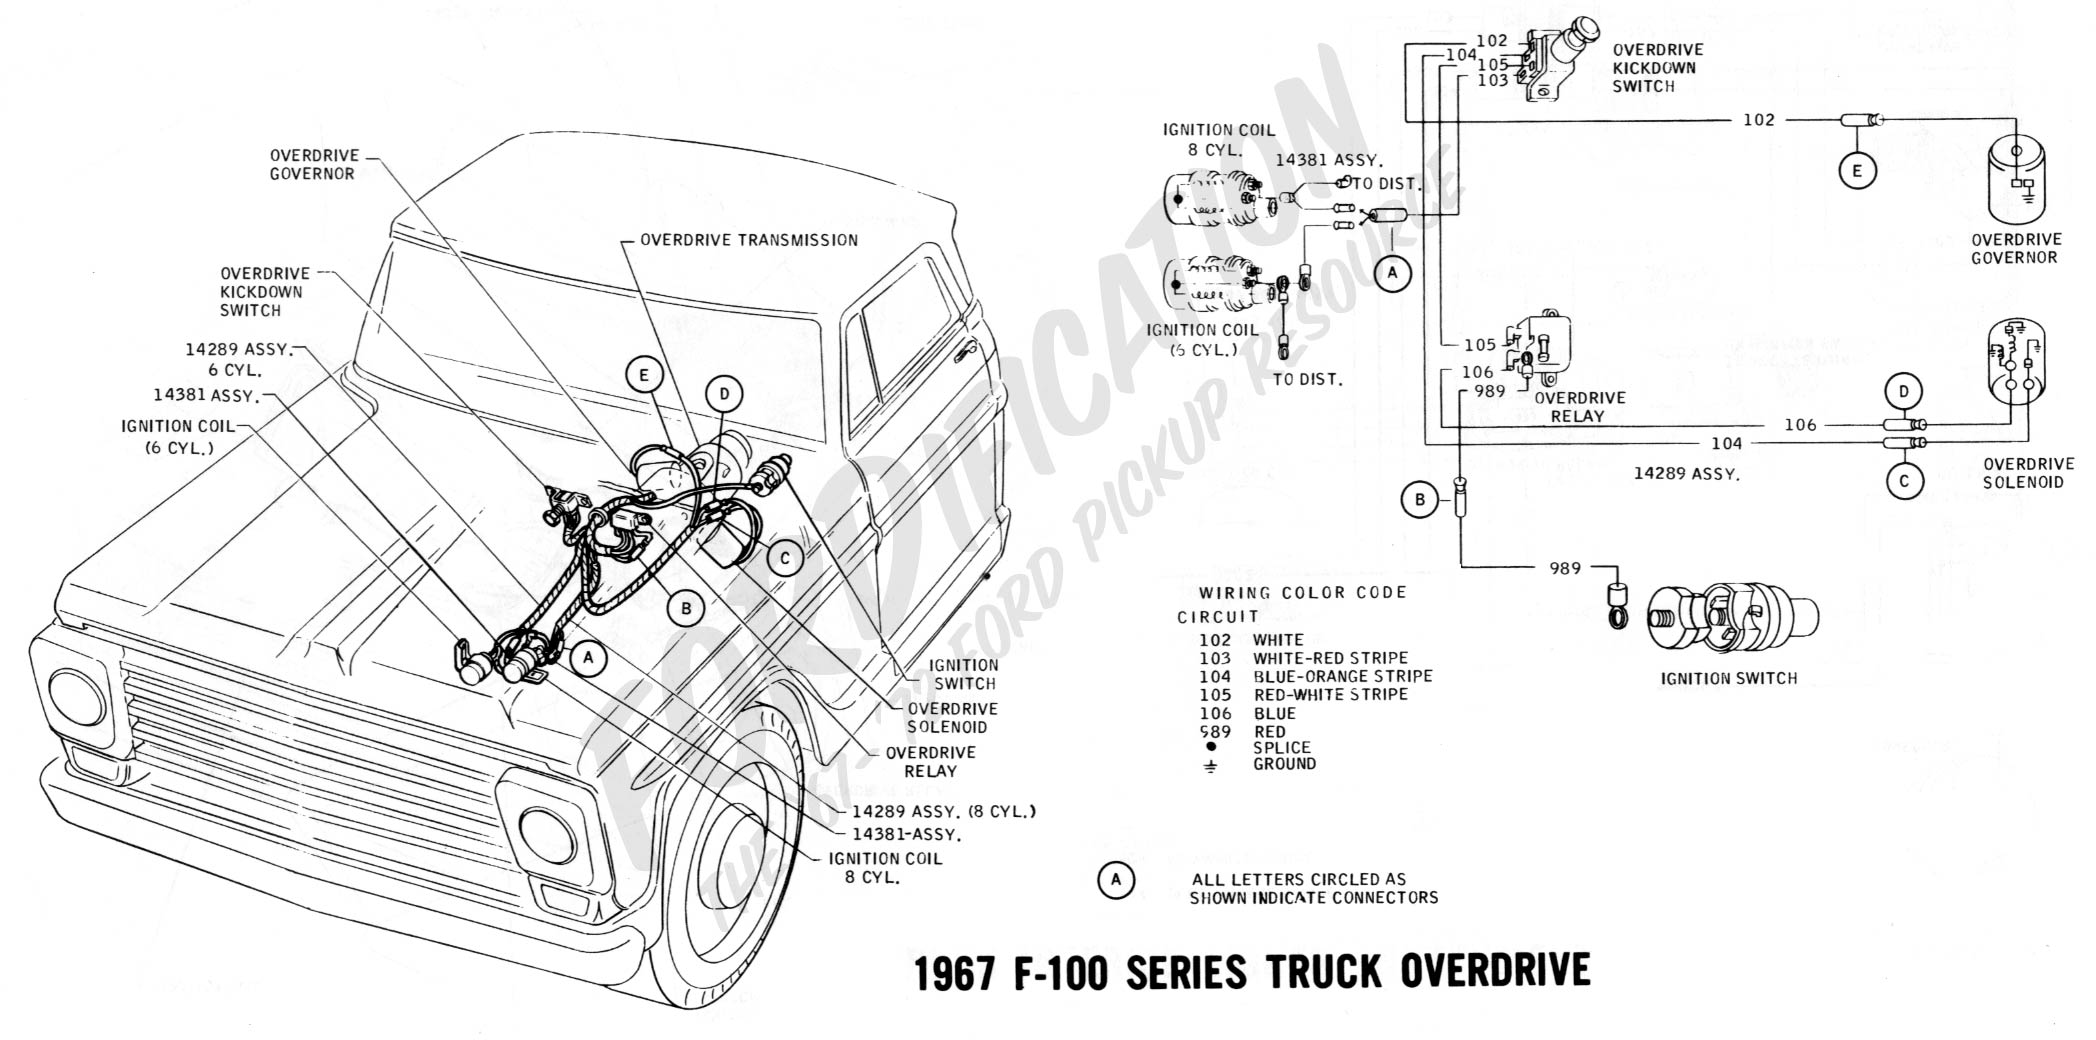 Schematics h on 1968 chevy chevelle wiring diagram